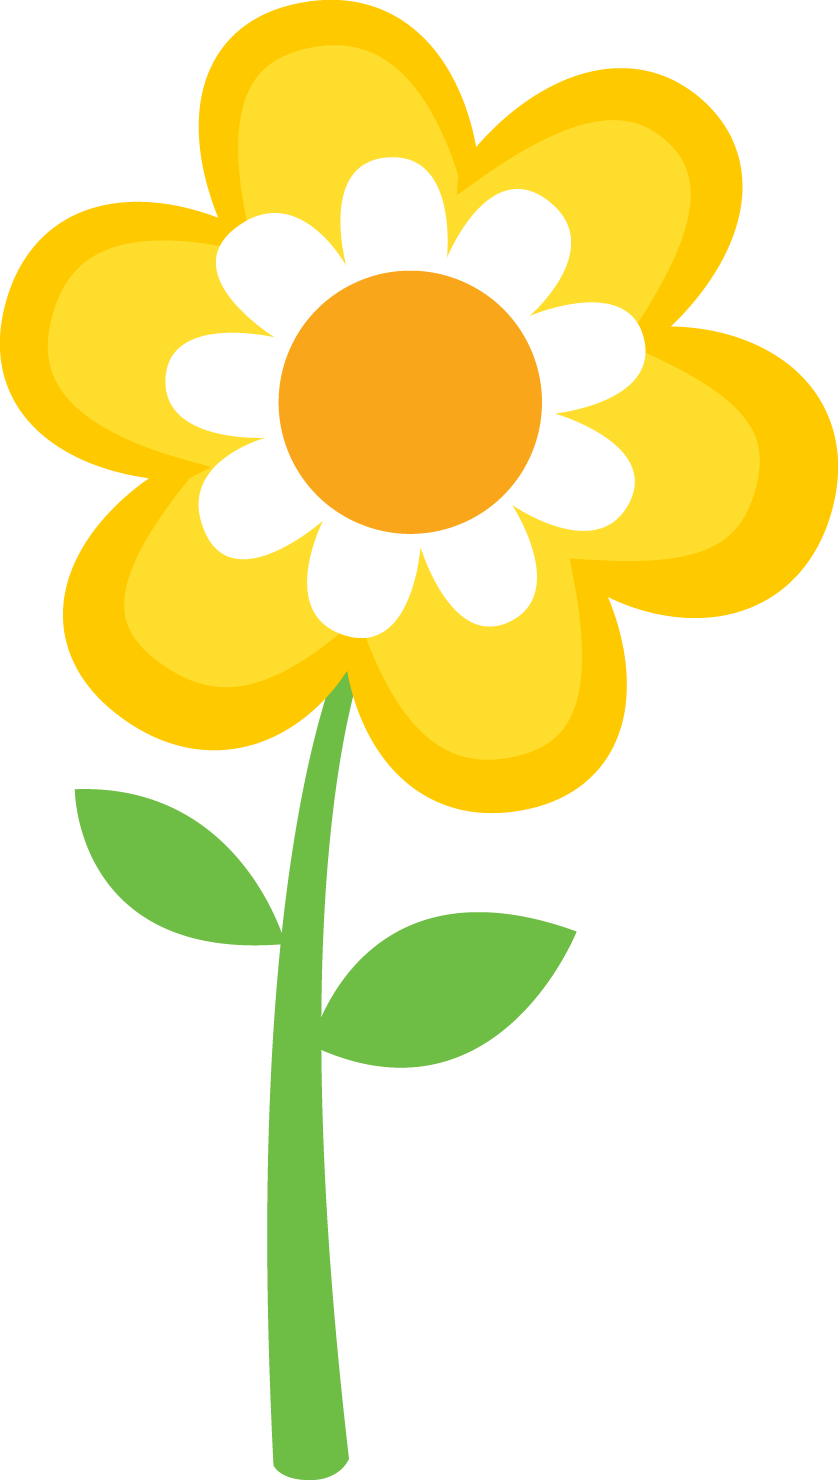 Graphic art flower clipart royalty free download i8Rgqup4koQY6.png (838×1480) | Thema bloemen | Pinterest | Clip art ... clipart royalty free download